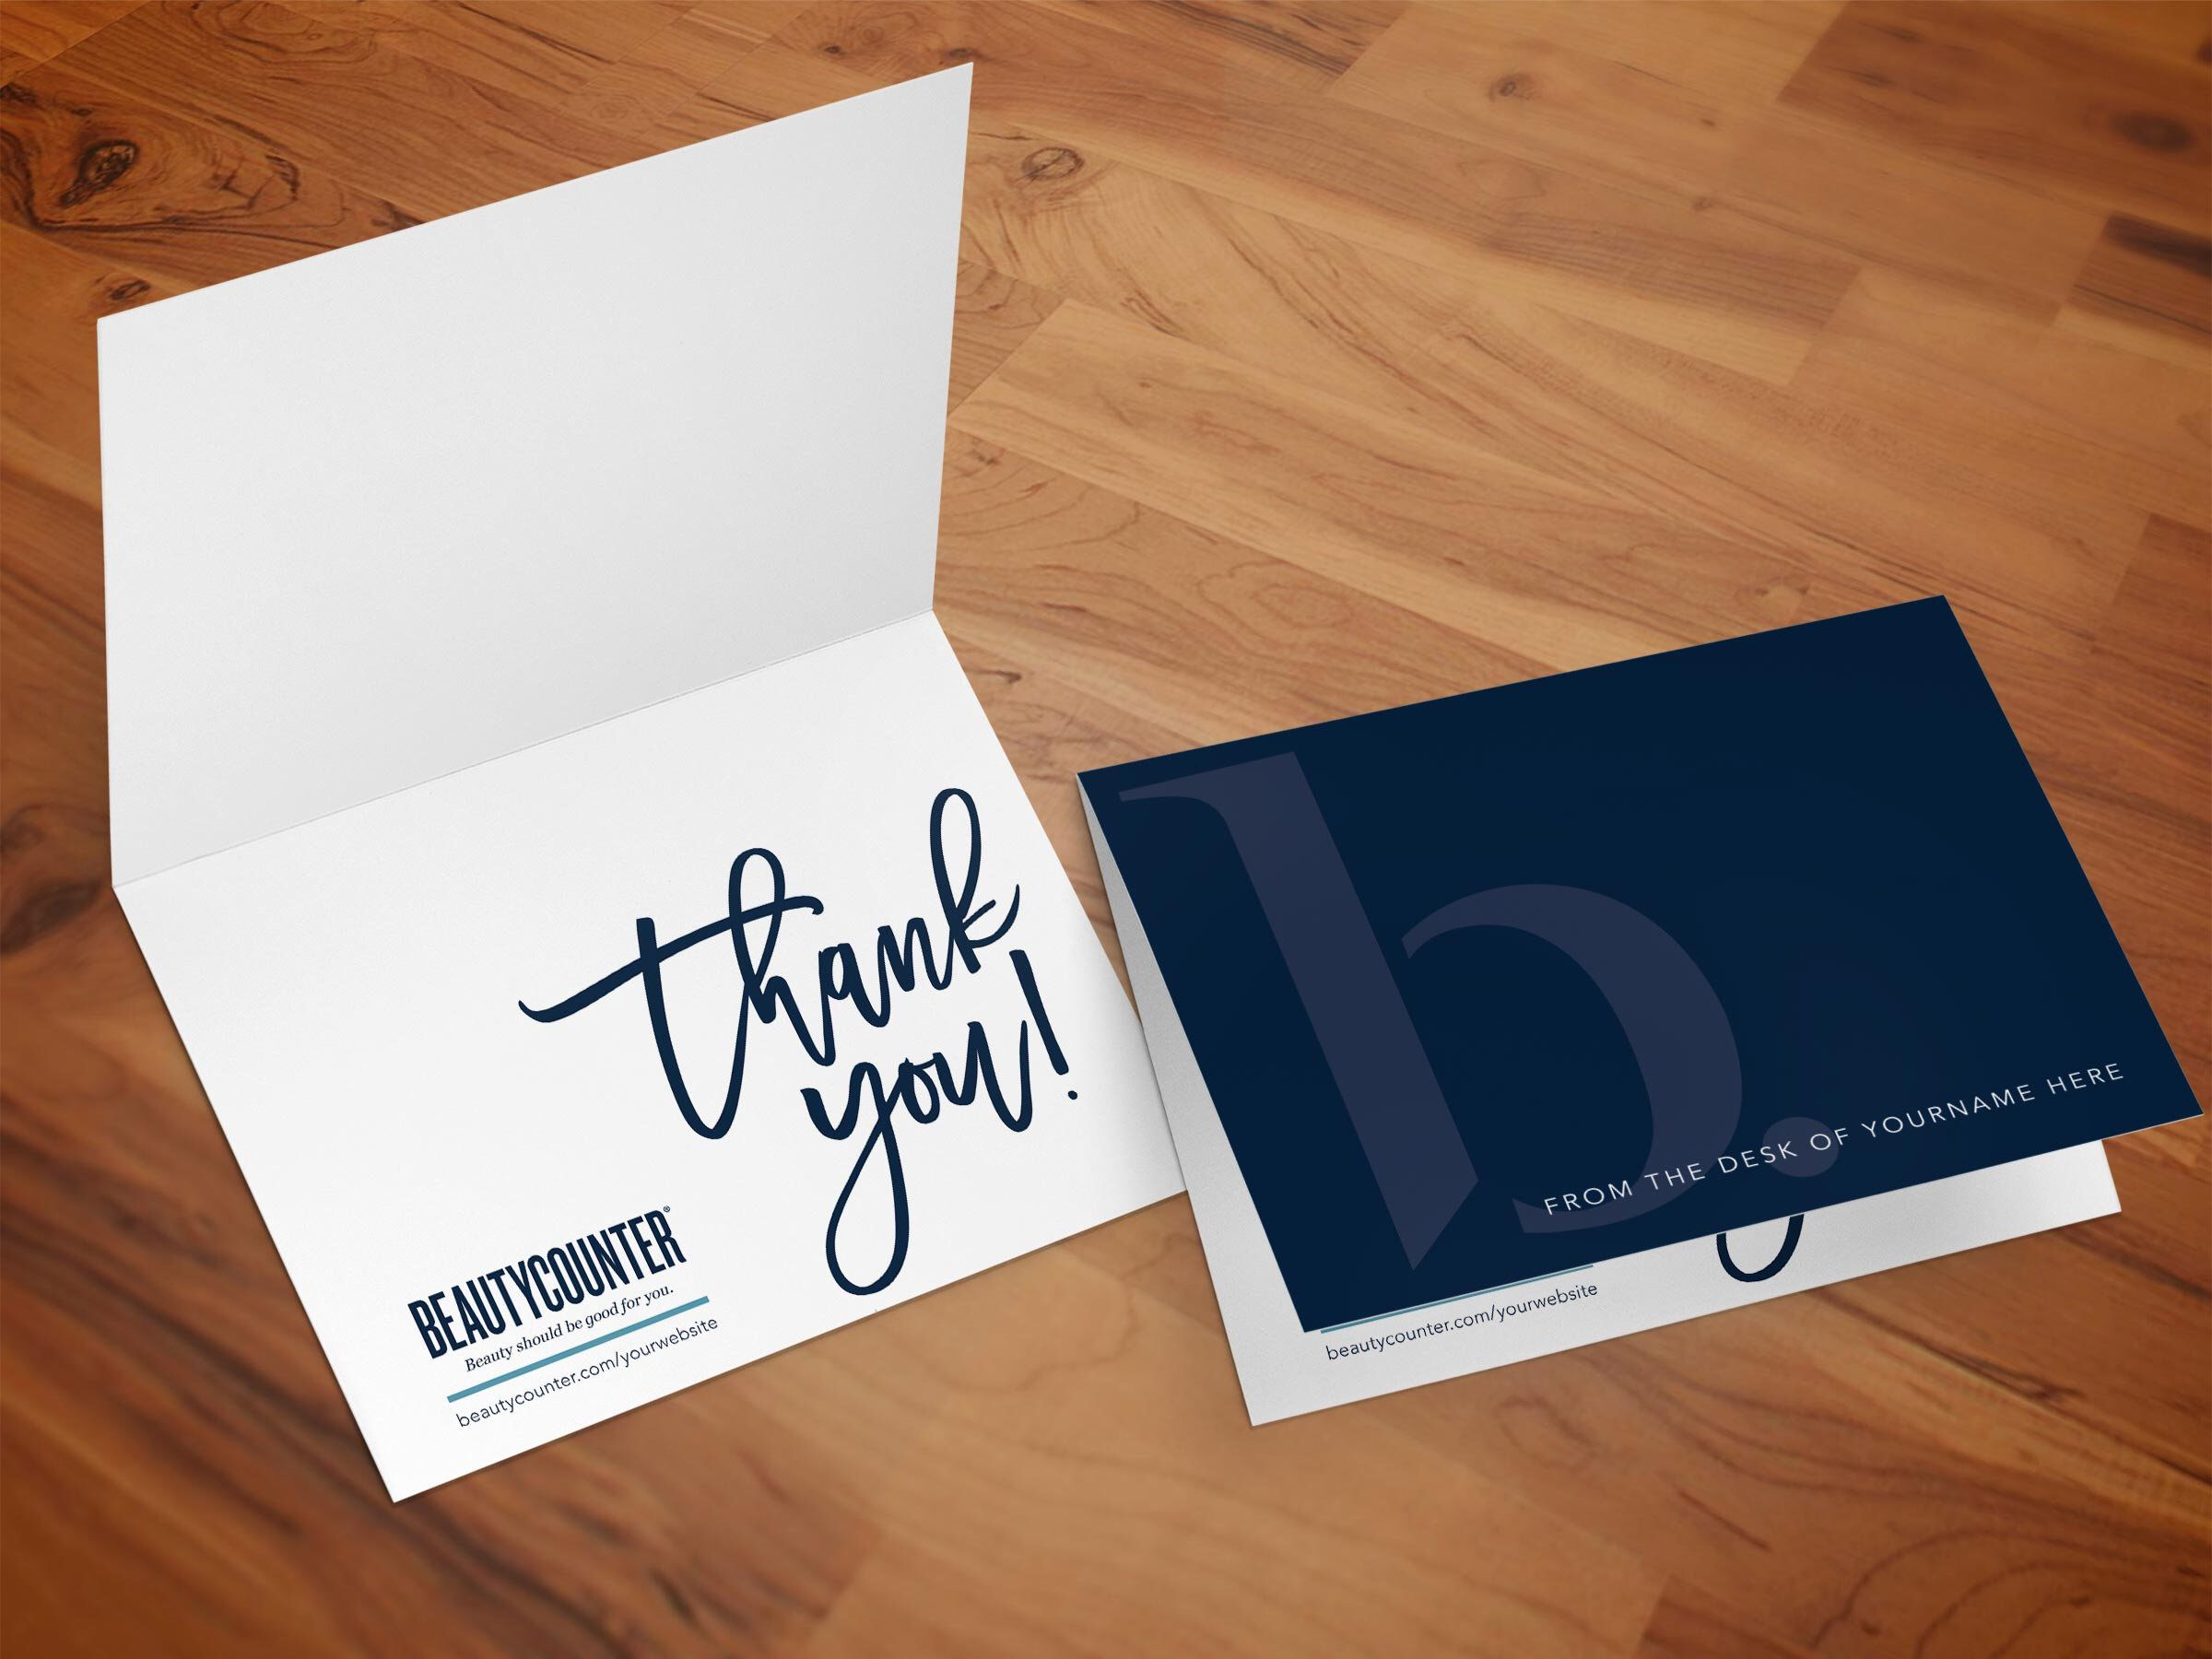 Personalized Thank You Card Printable Beautycounter Etsy Business Thank You Cards Personalized Thank You Cards Thank You Cards